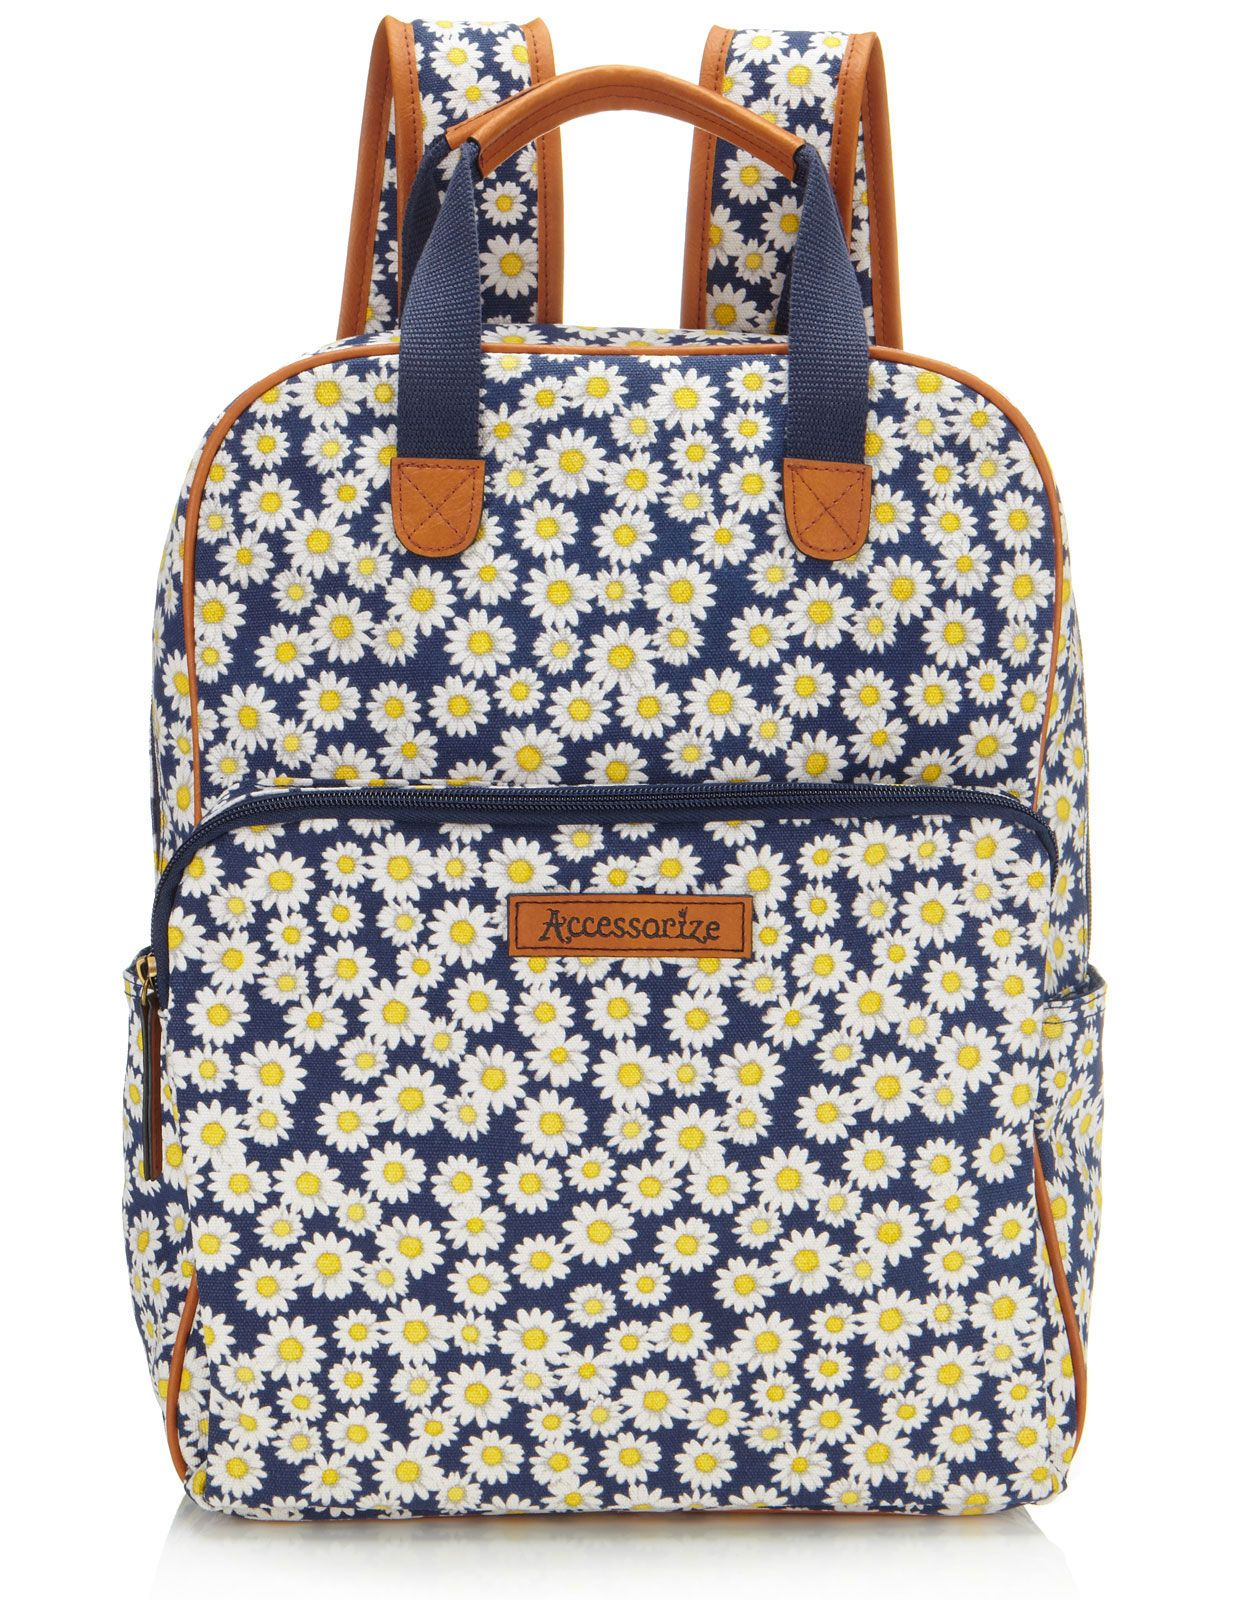 9137962b2620 Daisy Top Handle #Rucksack | Blue | Accessorize Love this new ...